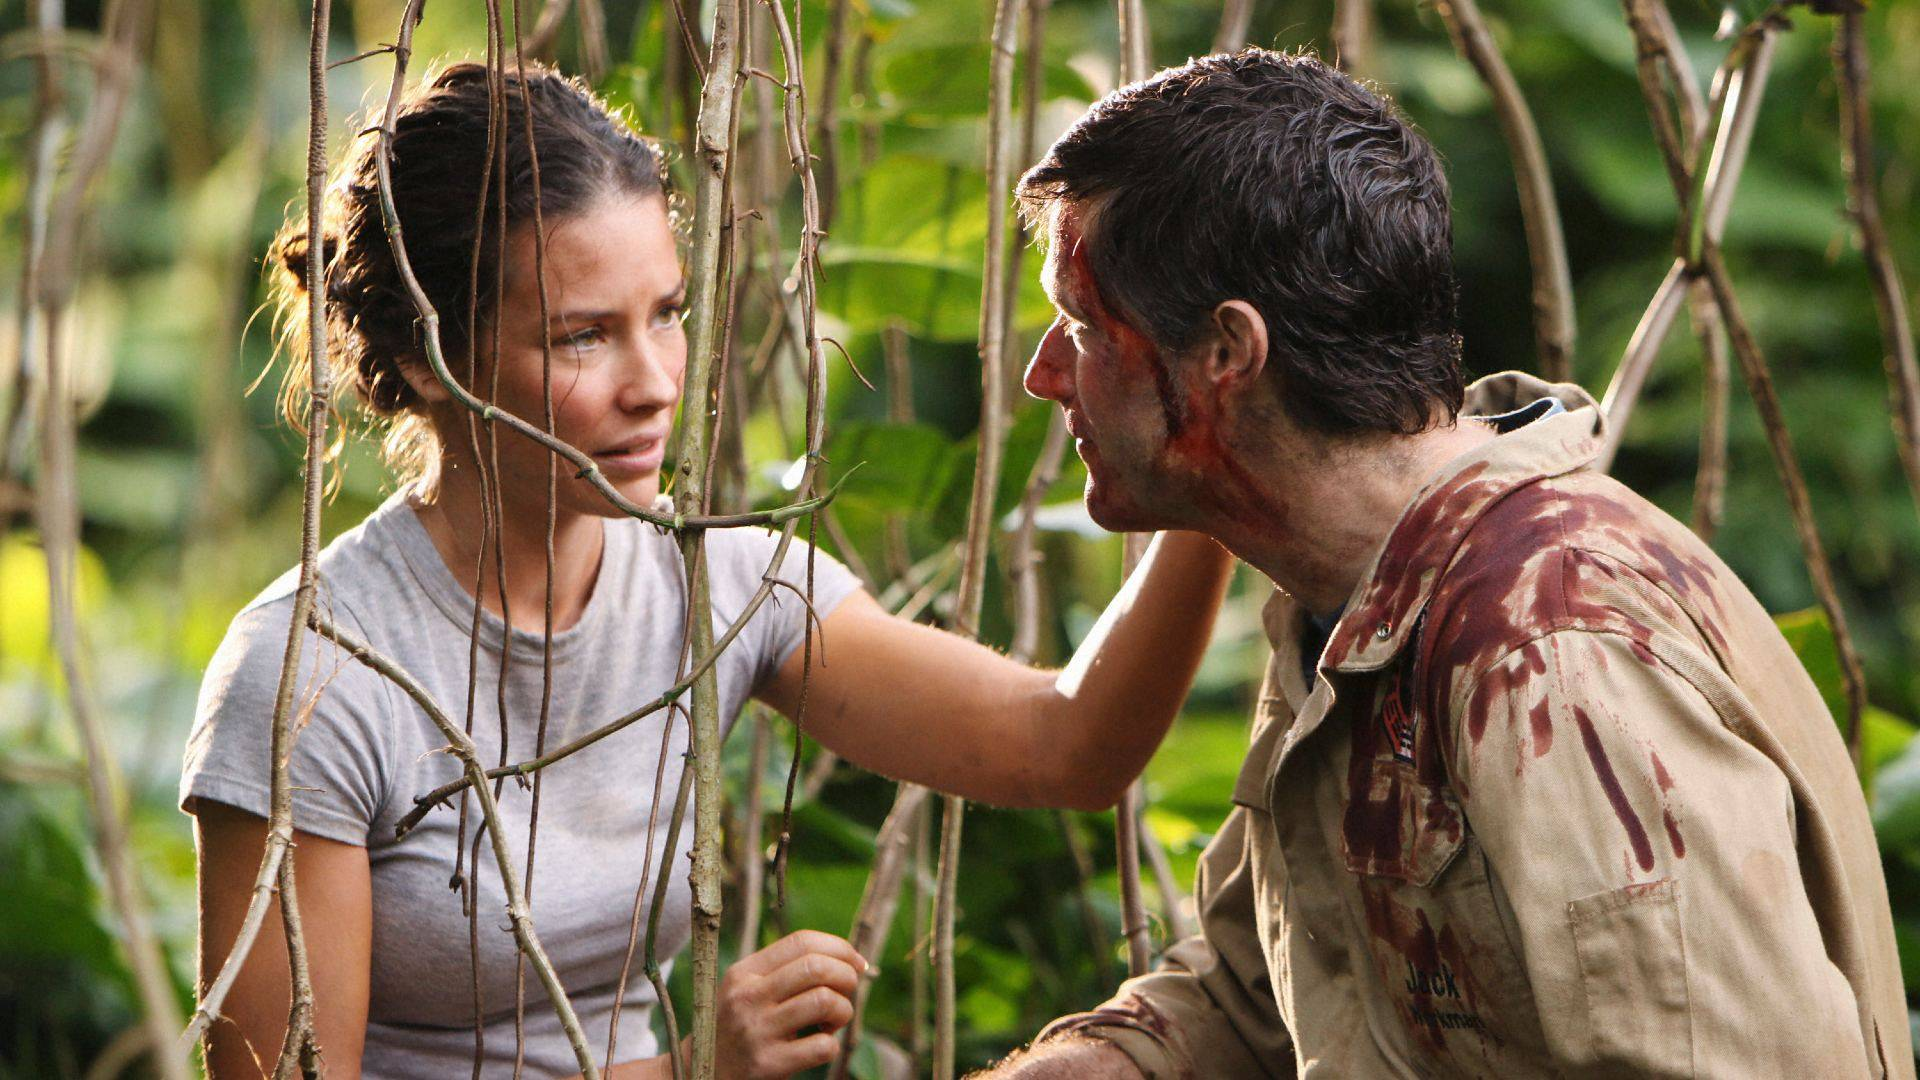 Kate e Jack (Lost), foto: Getty Images